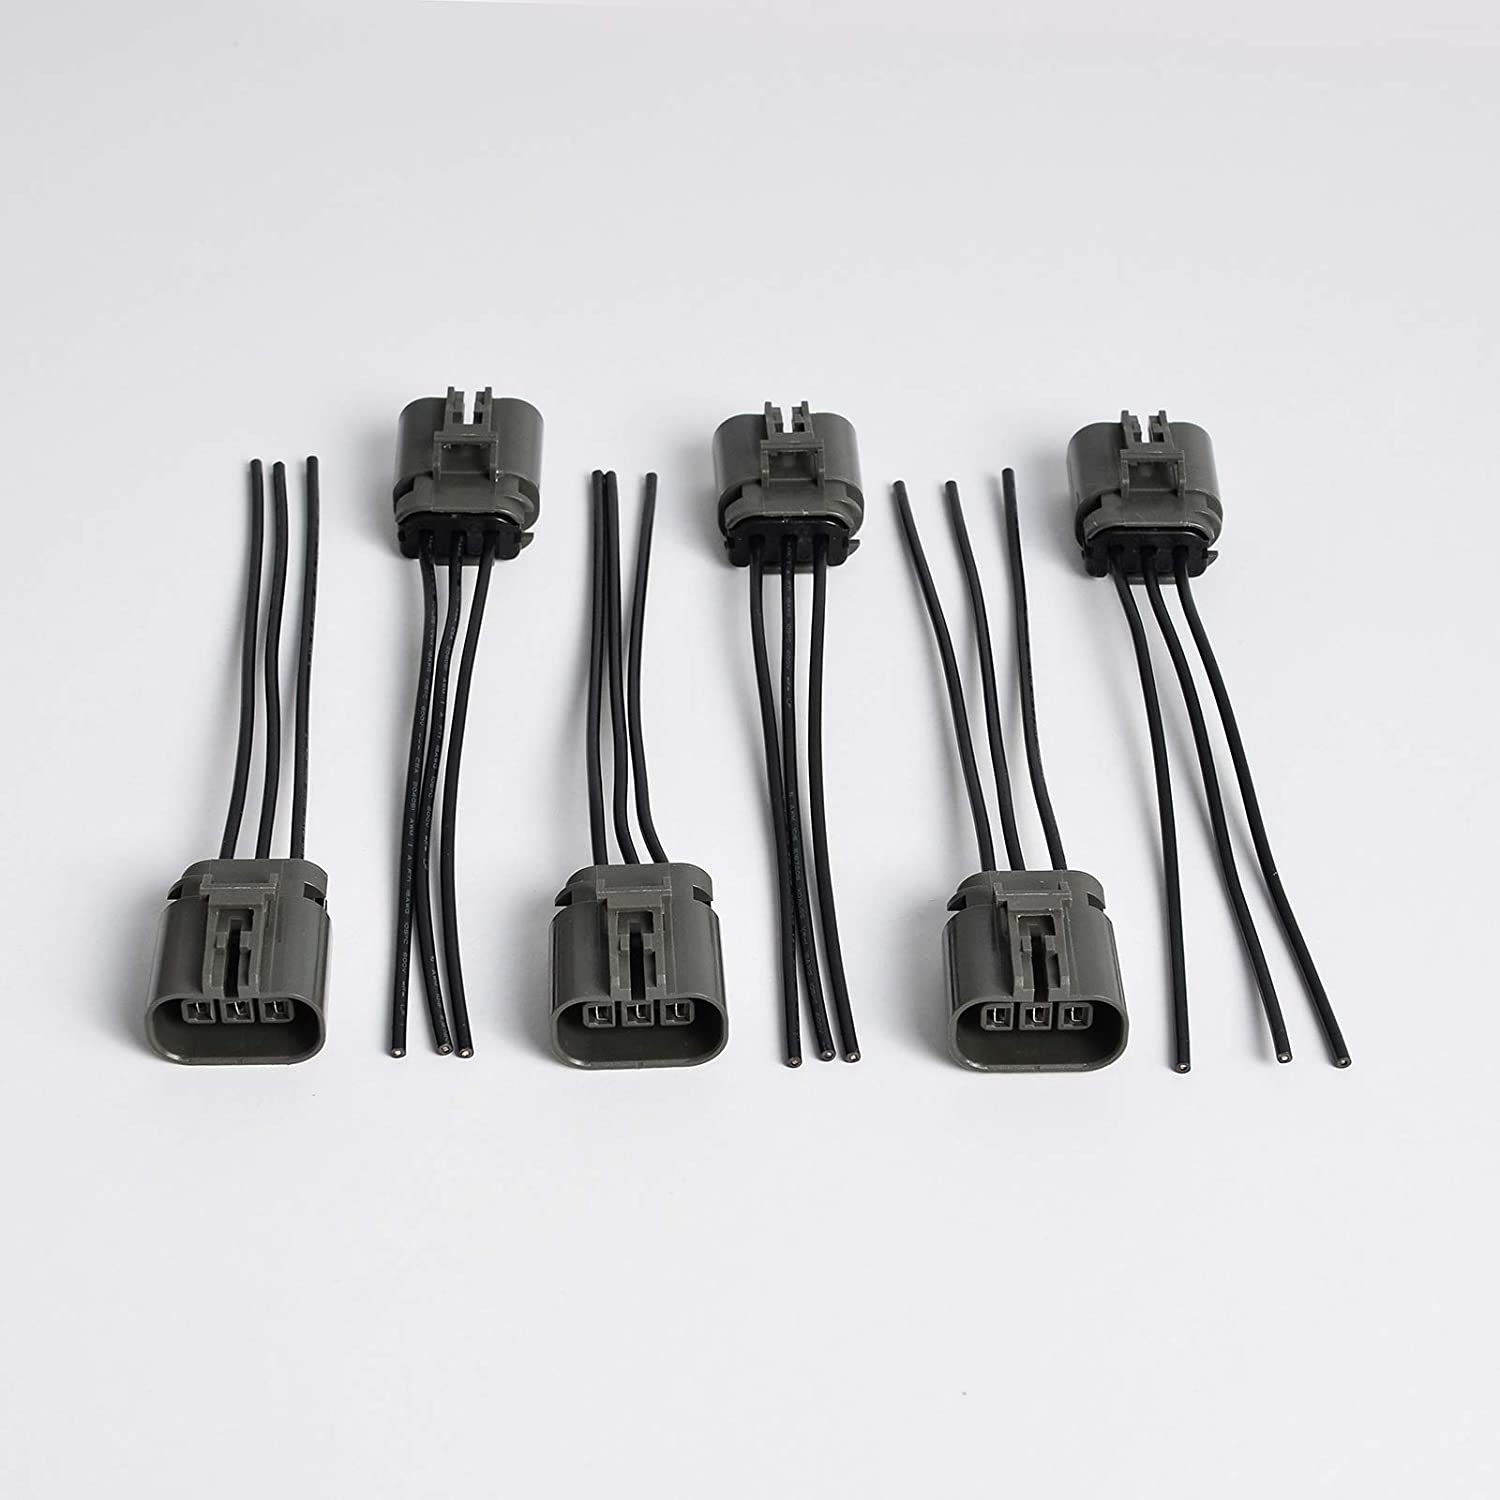 NICECNC 6PCS Ignition Coil Pack Wiring Harness Connectors Pigtail Replace 300ZX Z32 Infiniti J30